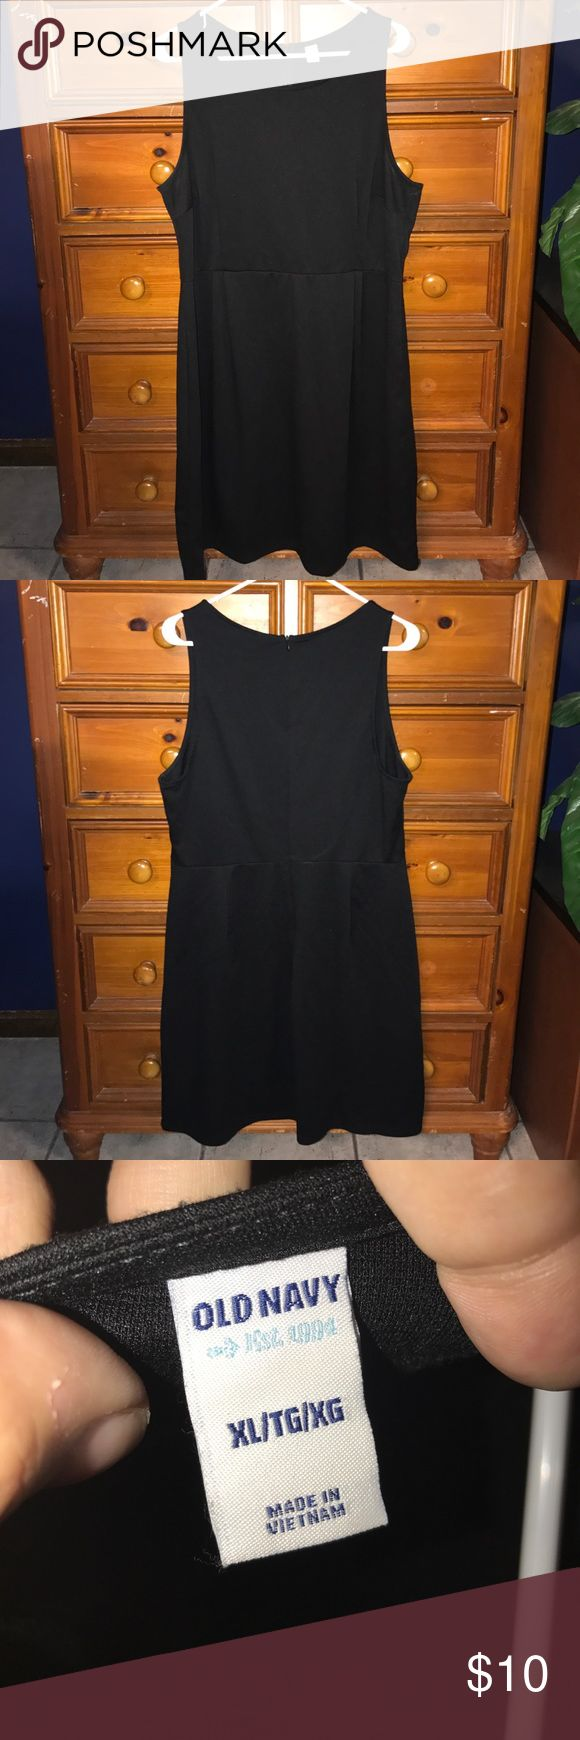 Black Tank Dress This is a used black tank dress. From Old Navy, size XL. This is a used dress, and does have minimal piling. This dress is perfect for work, and just as perfect for a night out! Zipper works perfectly. Smoke free home. Old Navy Dresses Midi